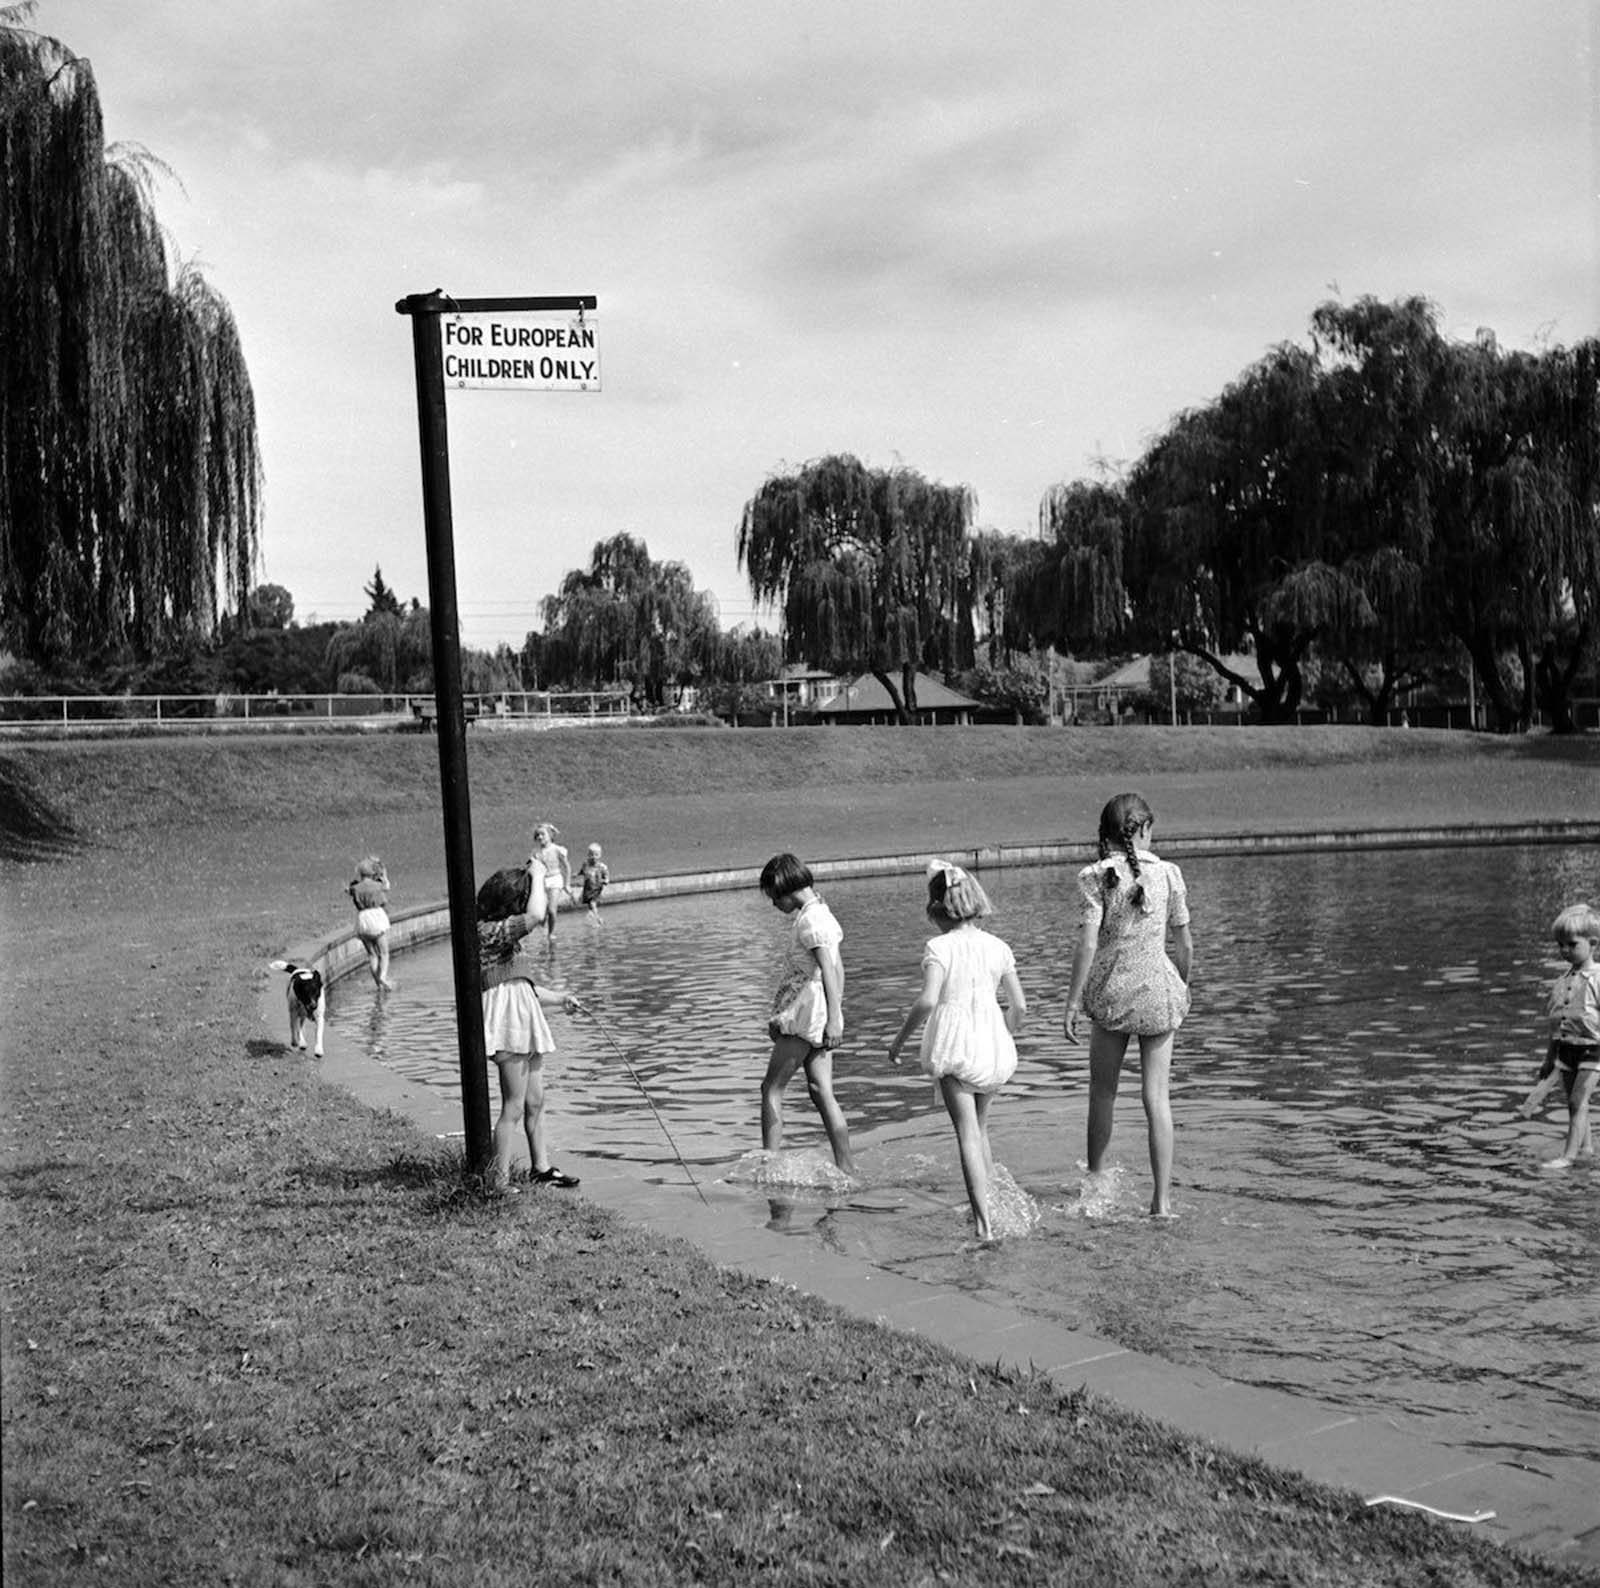 White children paddling in a pond marked by a sign reading